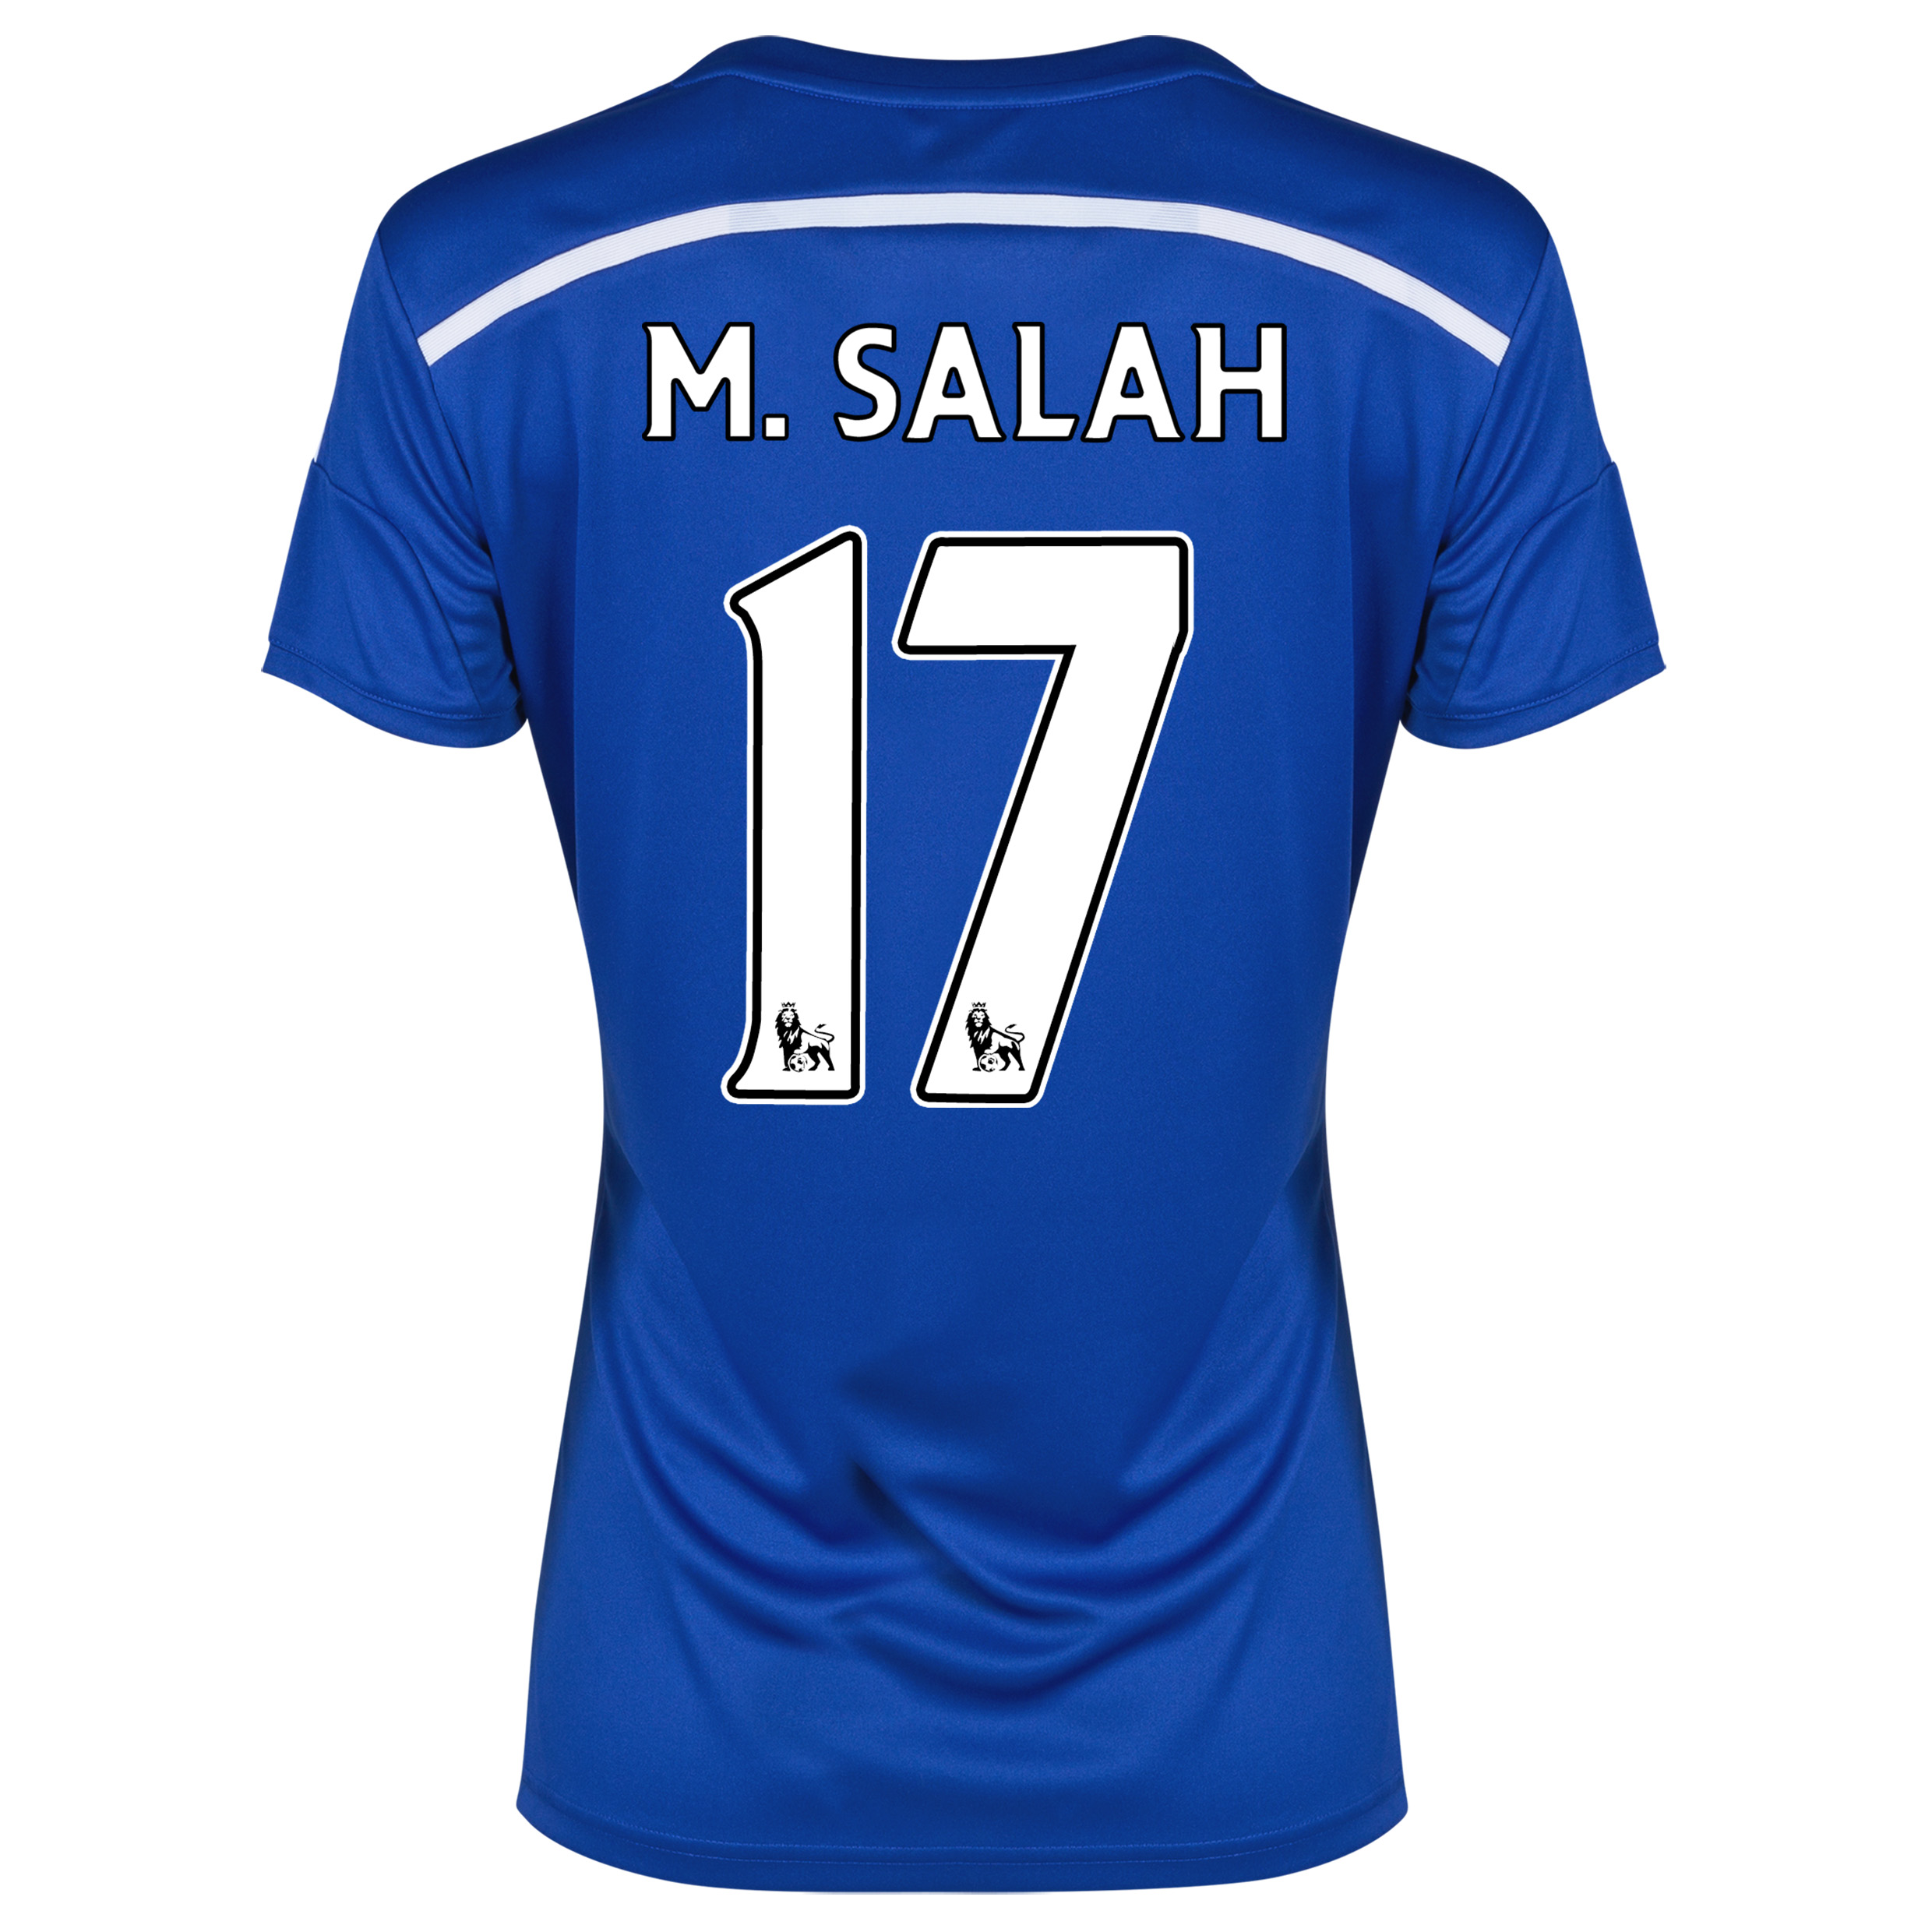 Chelsea Home Shirt 2014/15 - Womens Blue with M. Salah 15 printing